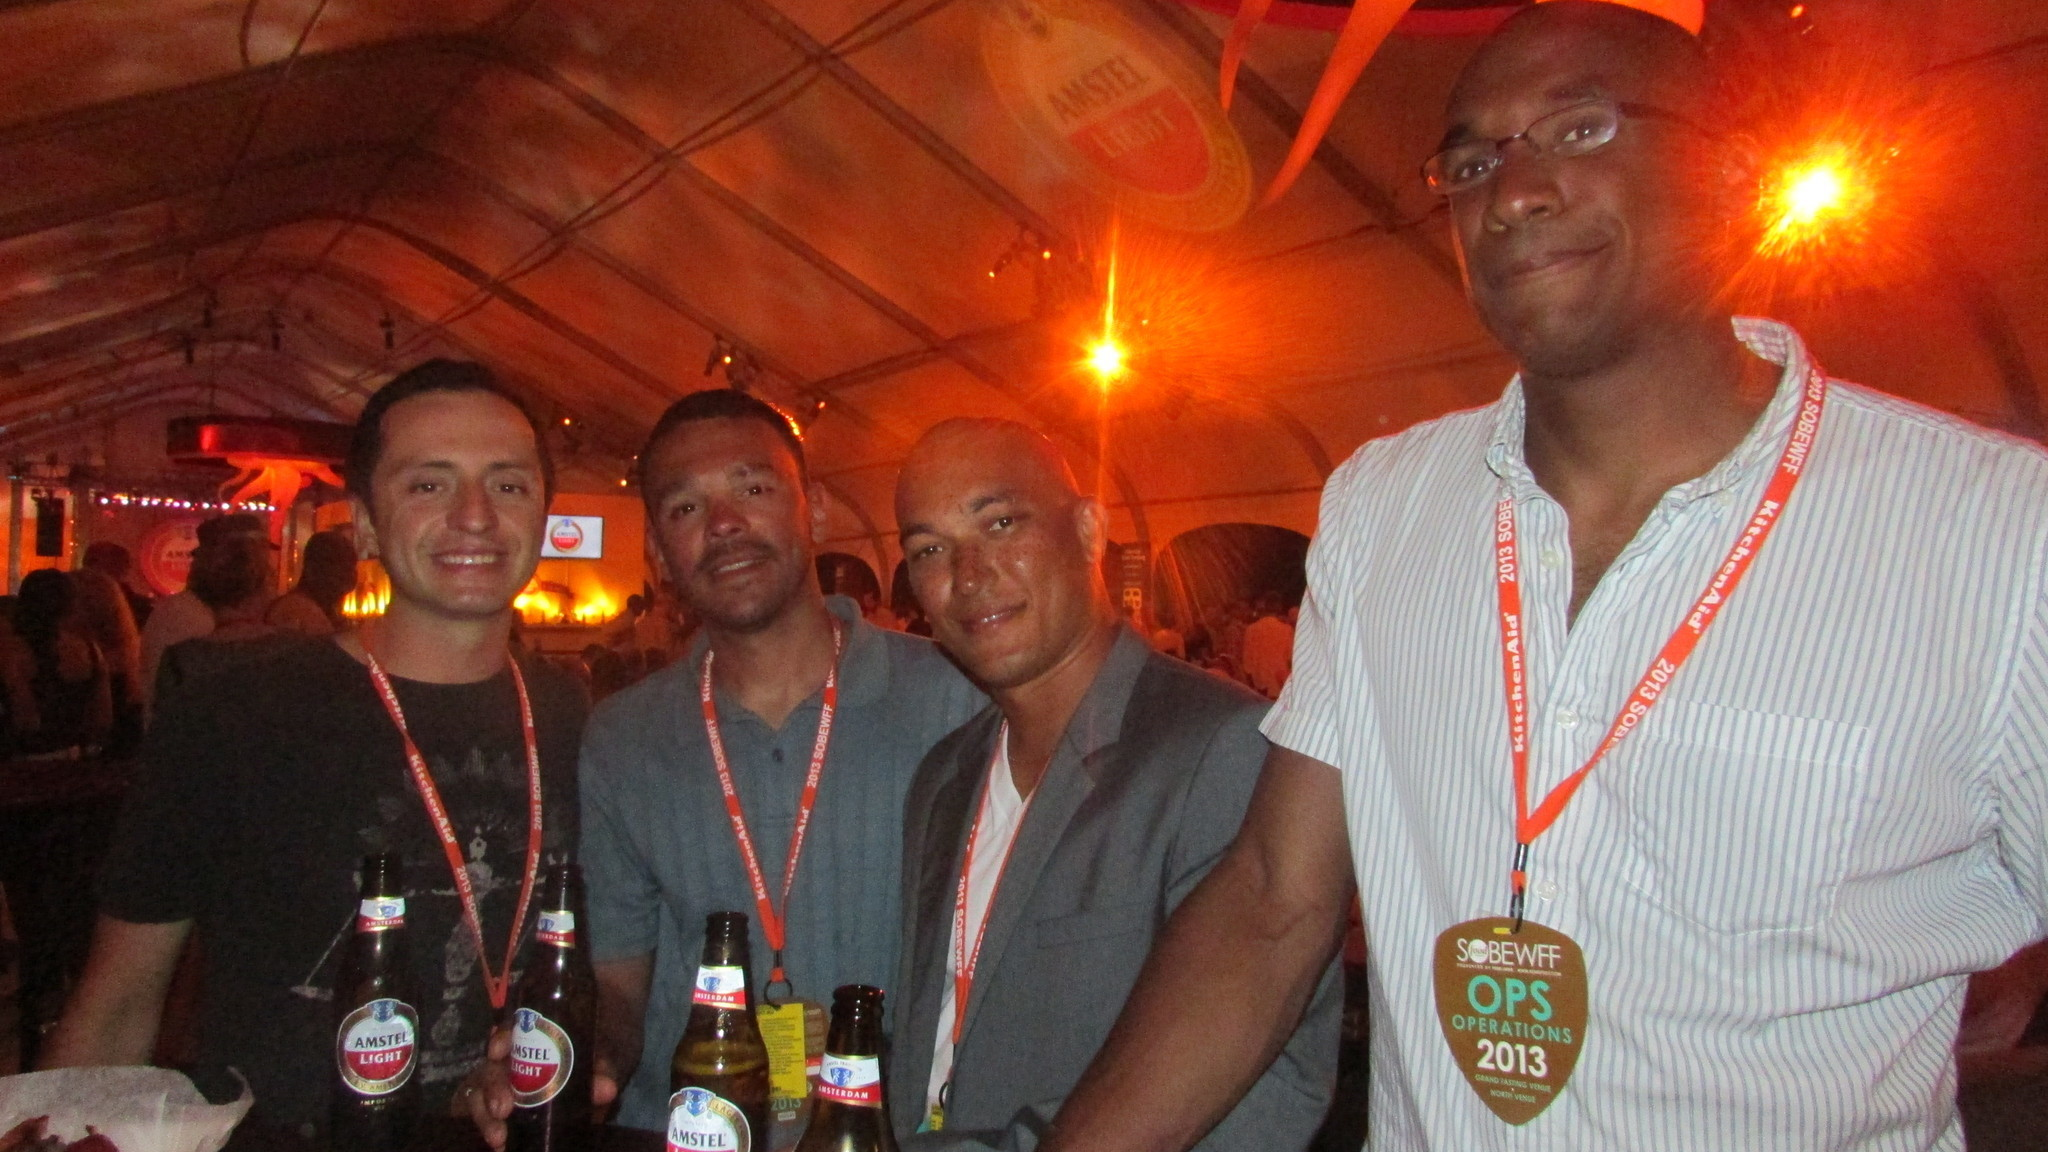 Spot your friends at SoBe Wine and Food Festival - Amstel Light Burger Bash